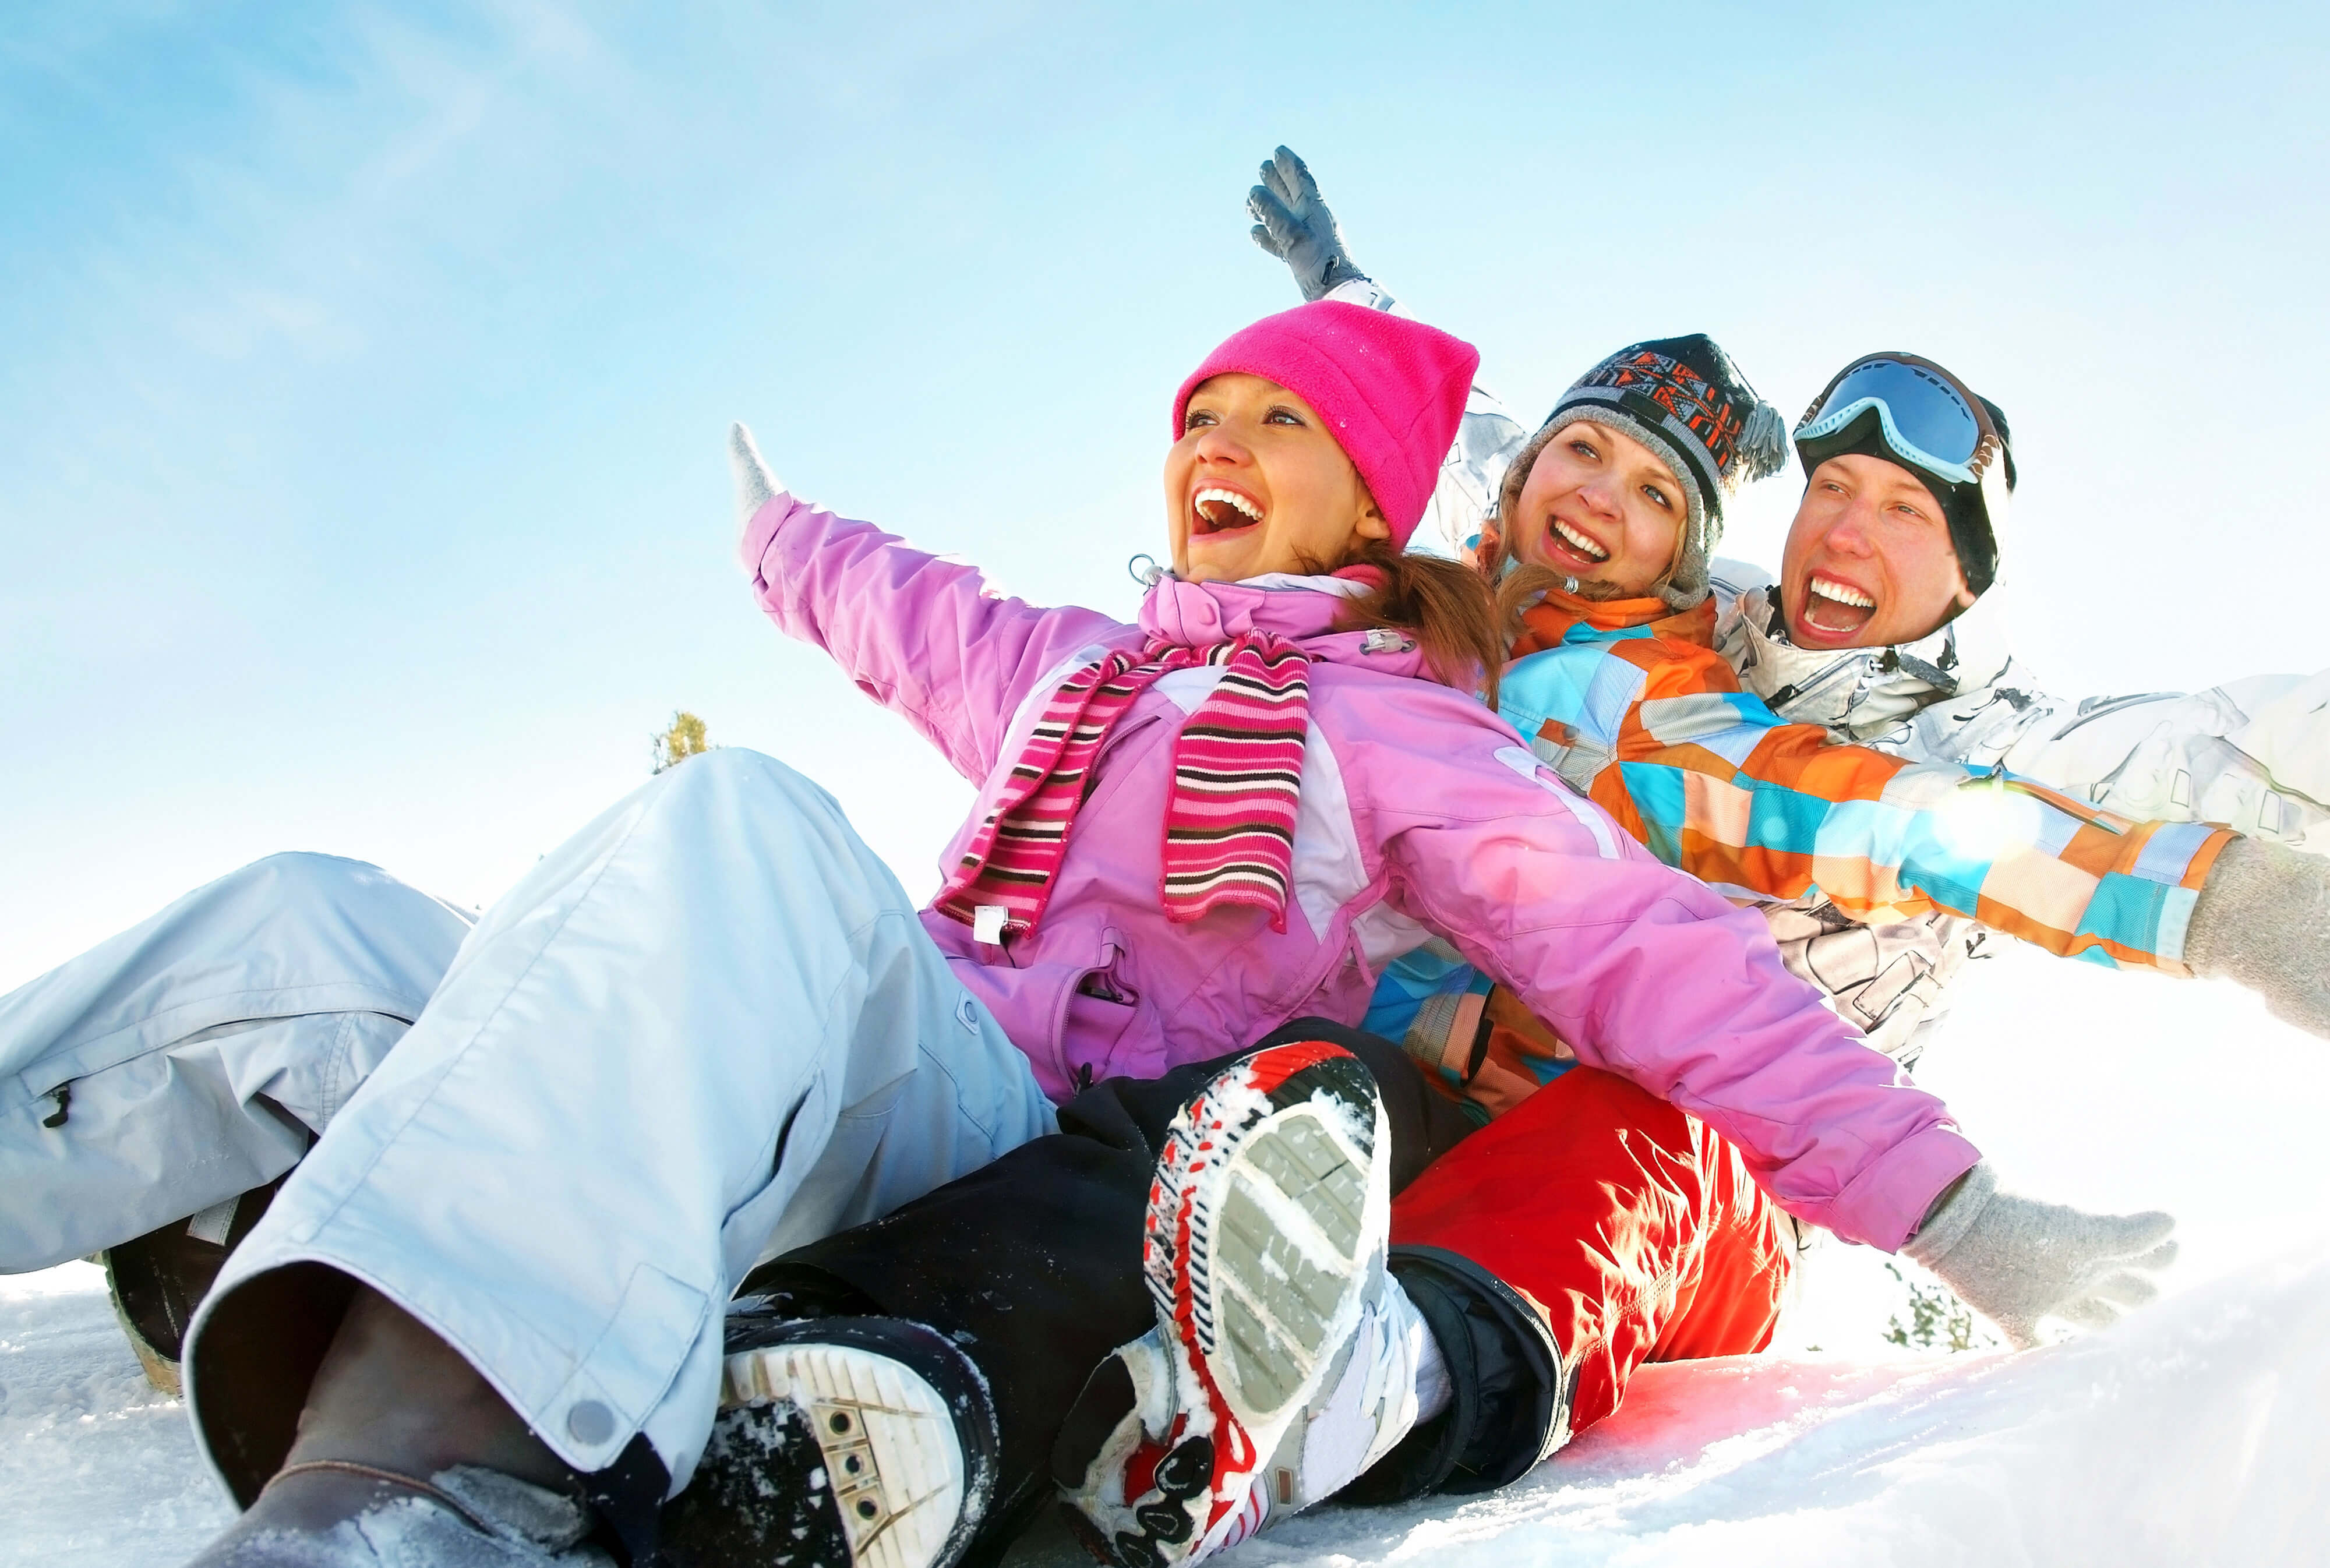 Family Reunion Hotel Deals In Park City - Park City Family Reunion